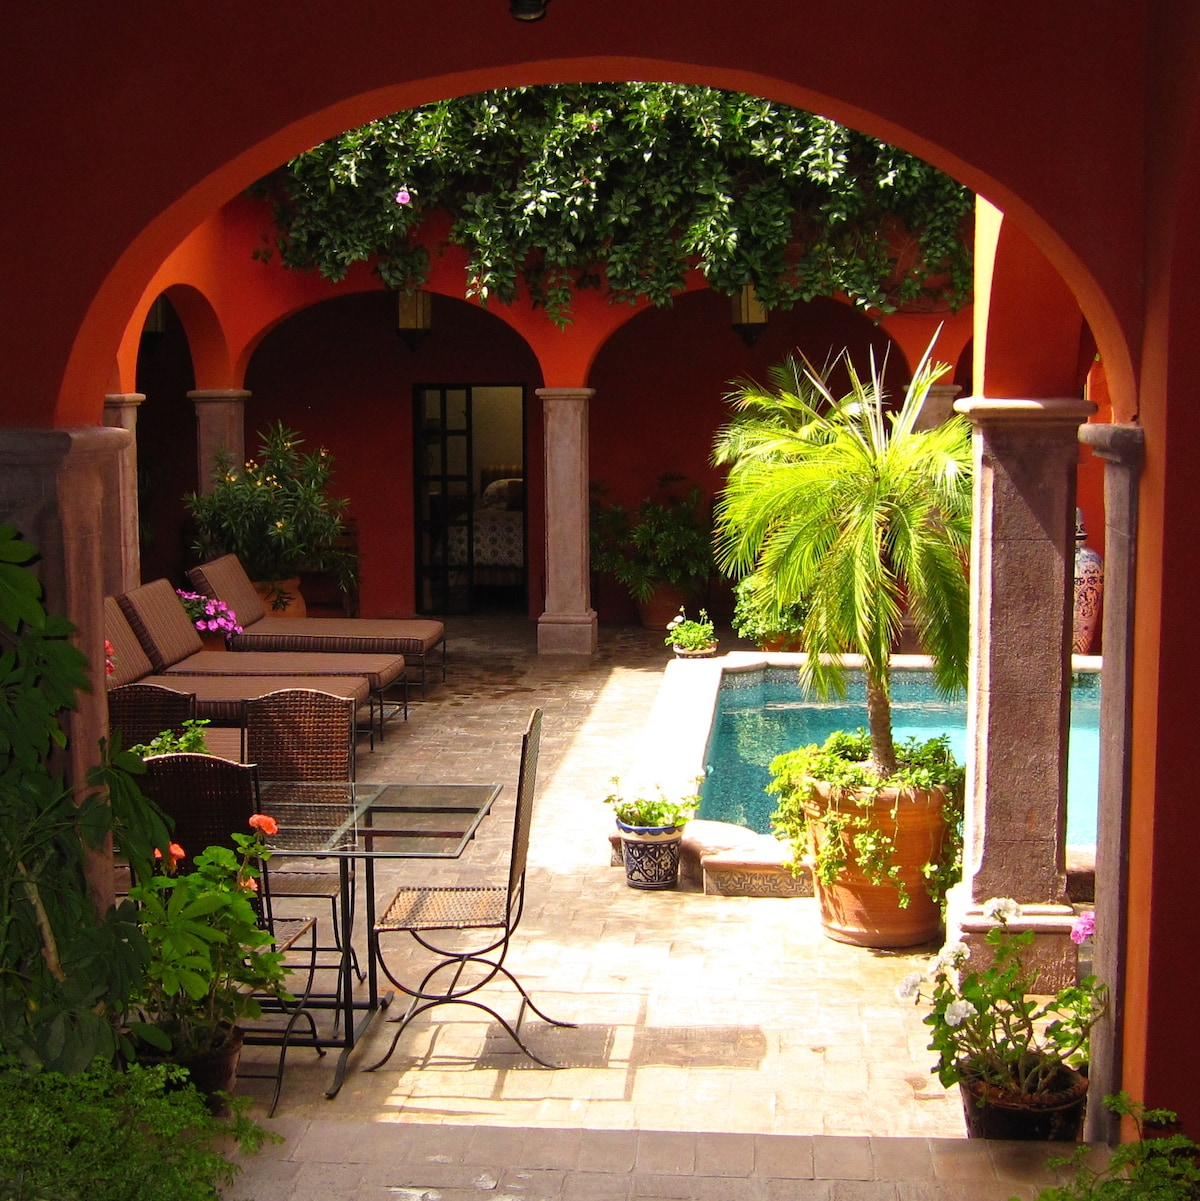 View of the Pool Patio from the Outdoor Living Area